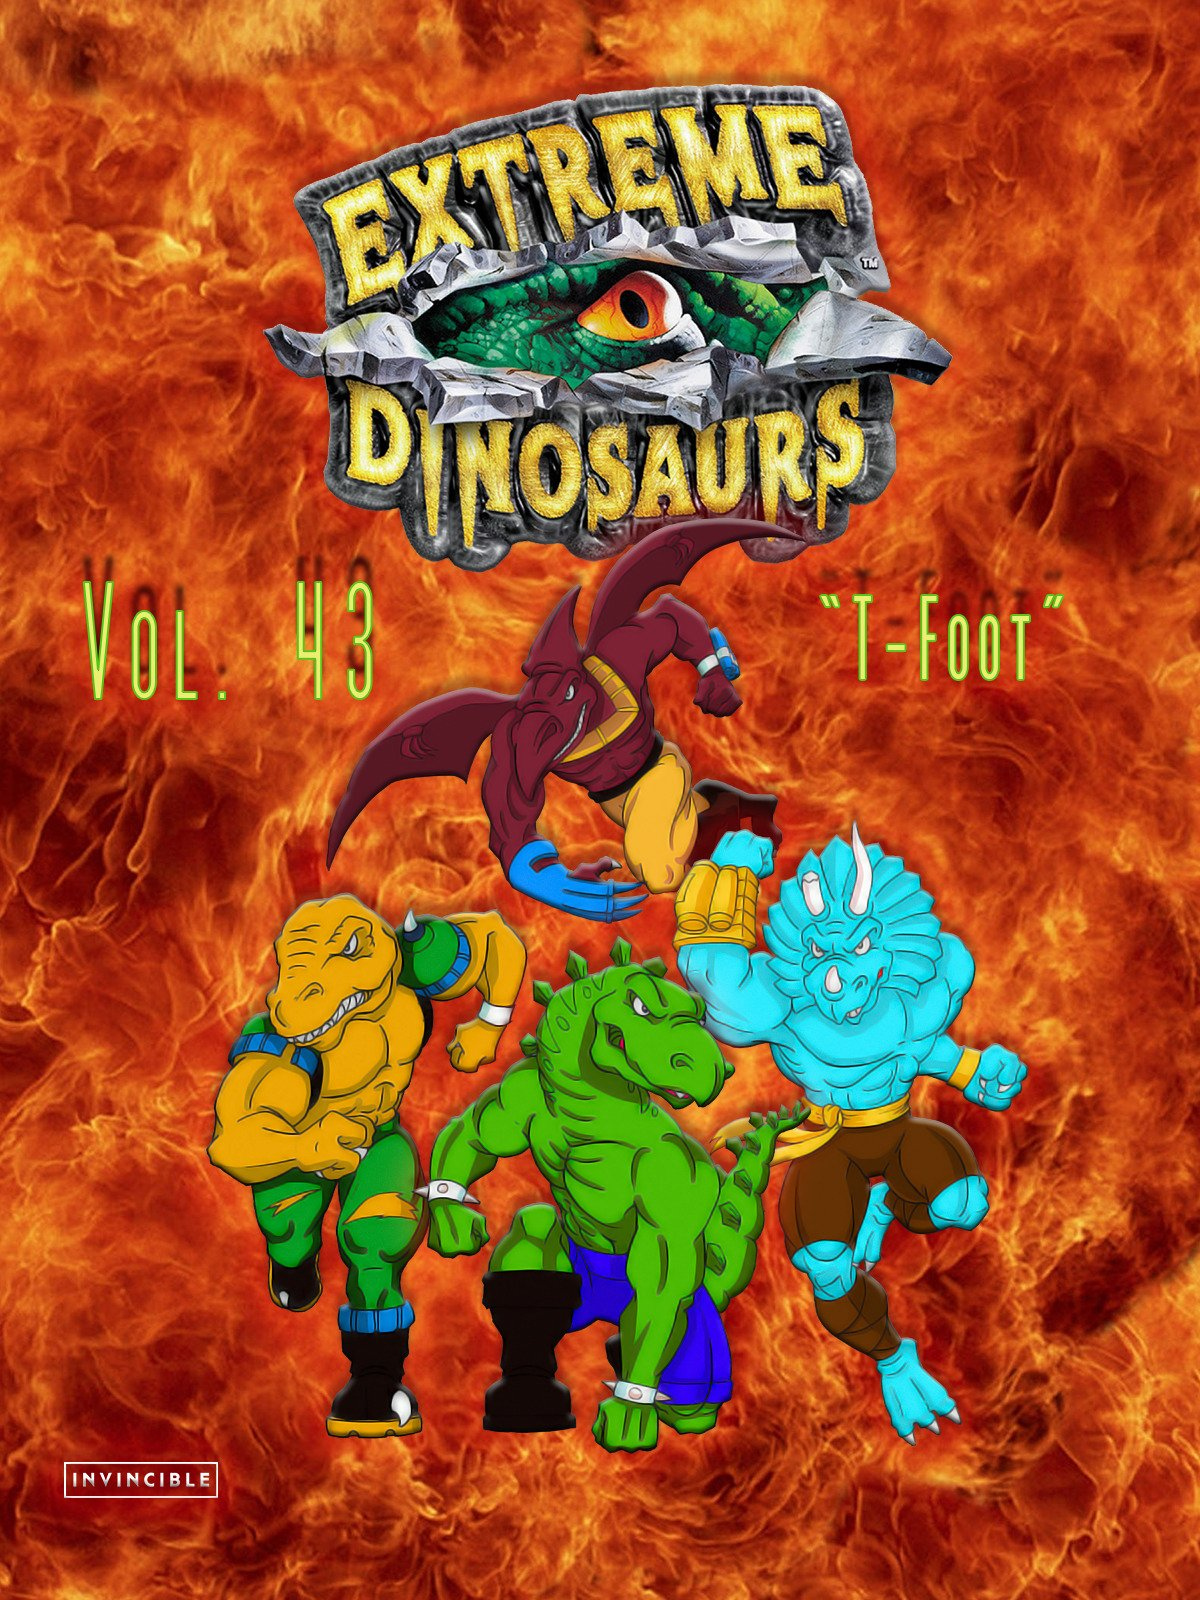 Extreme Dinosaurs Vol. 43T-Foot